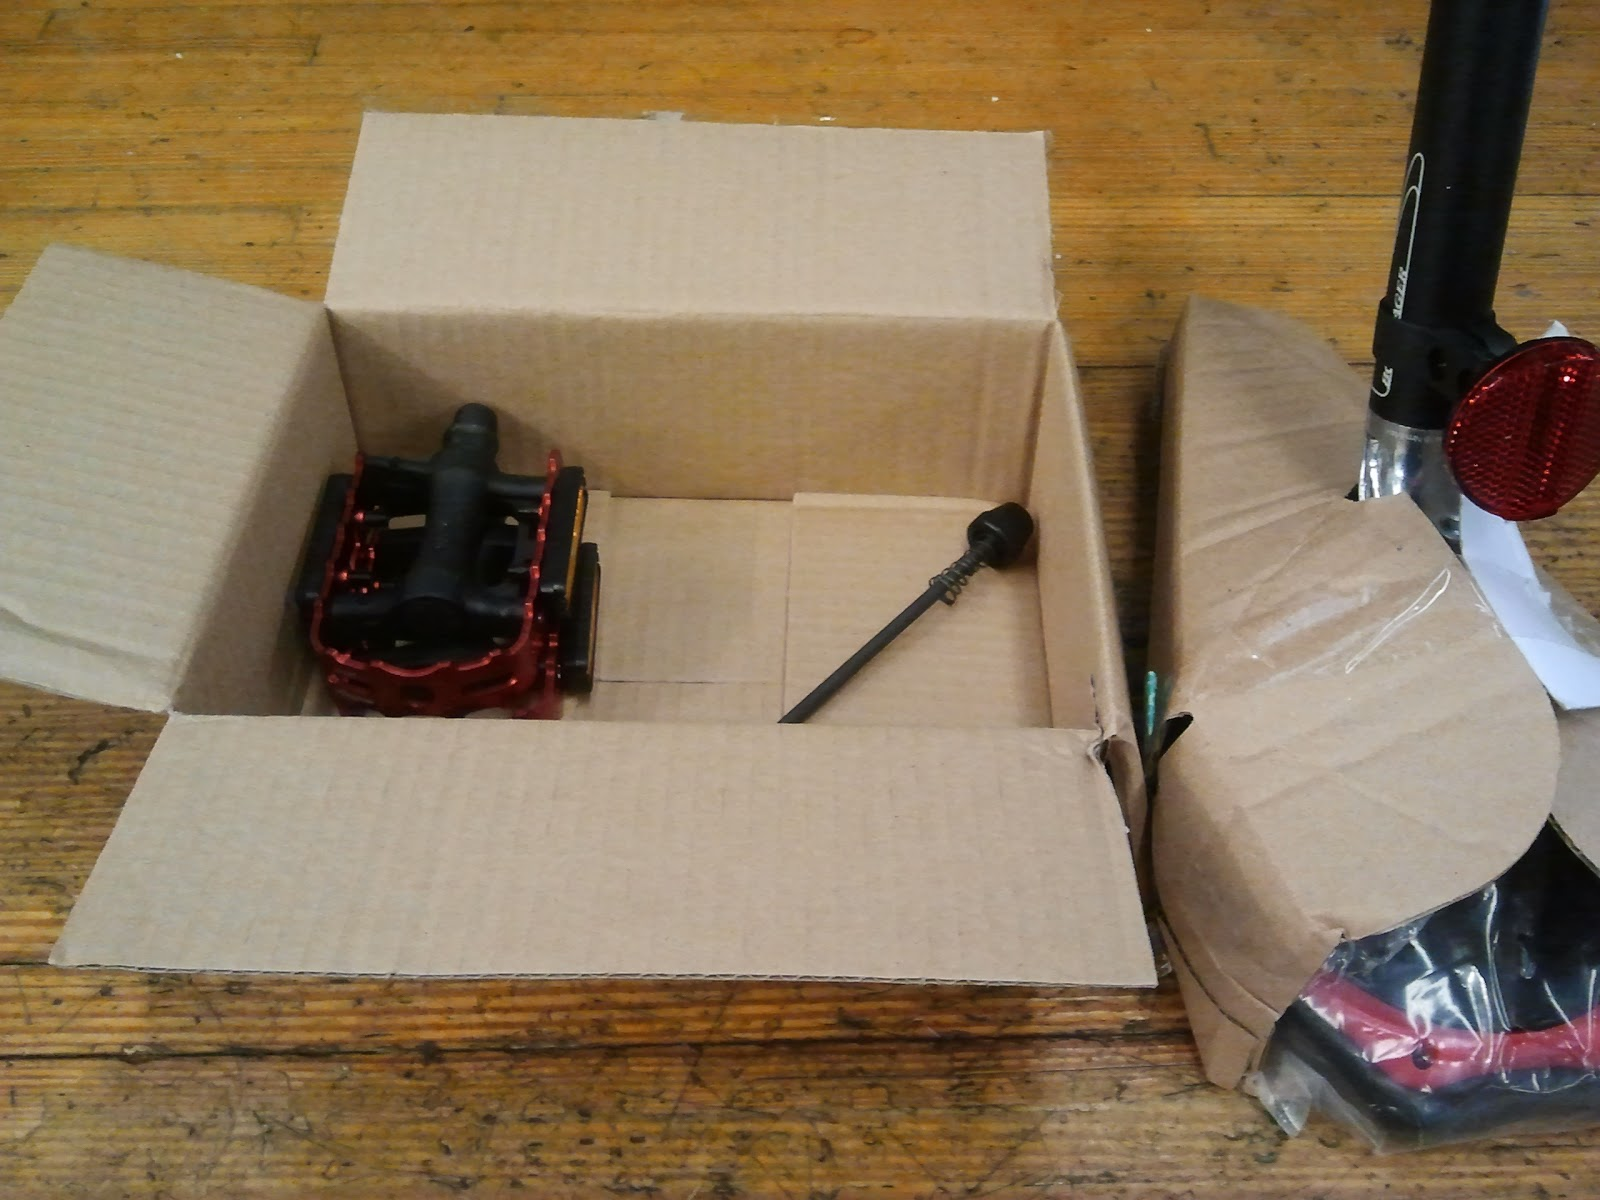 Bike Parts Unboxing Remove the bicycle from the